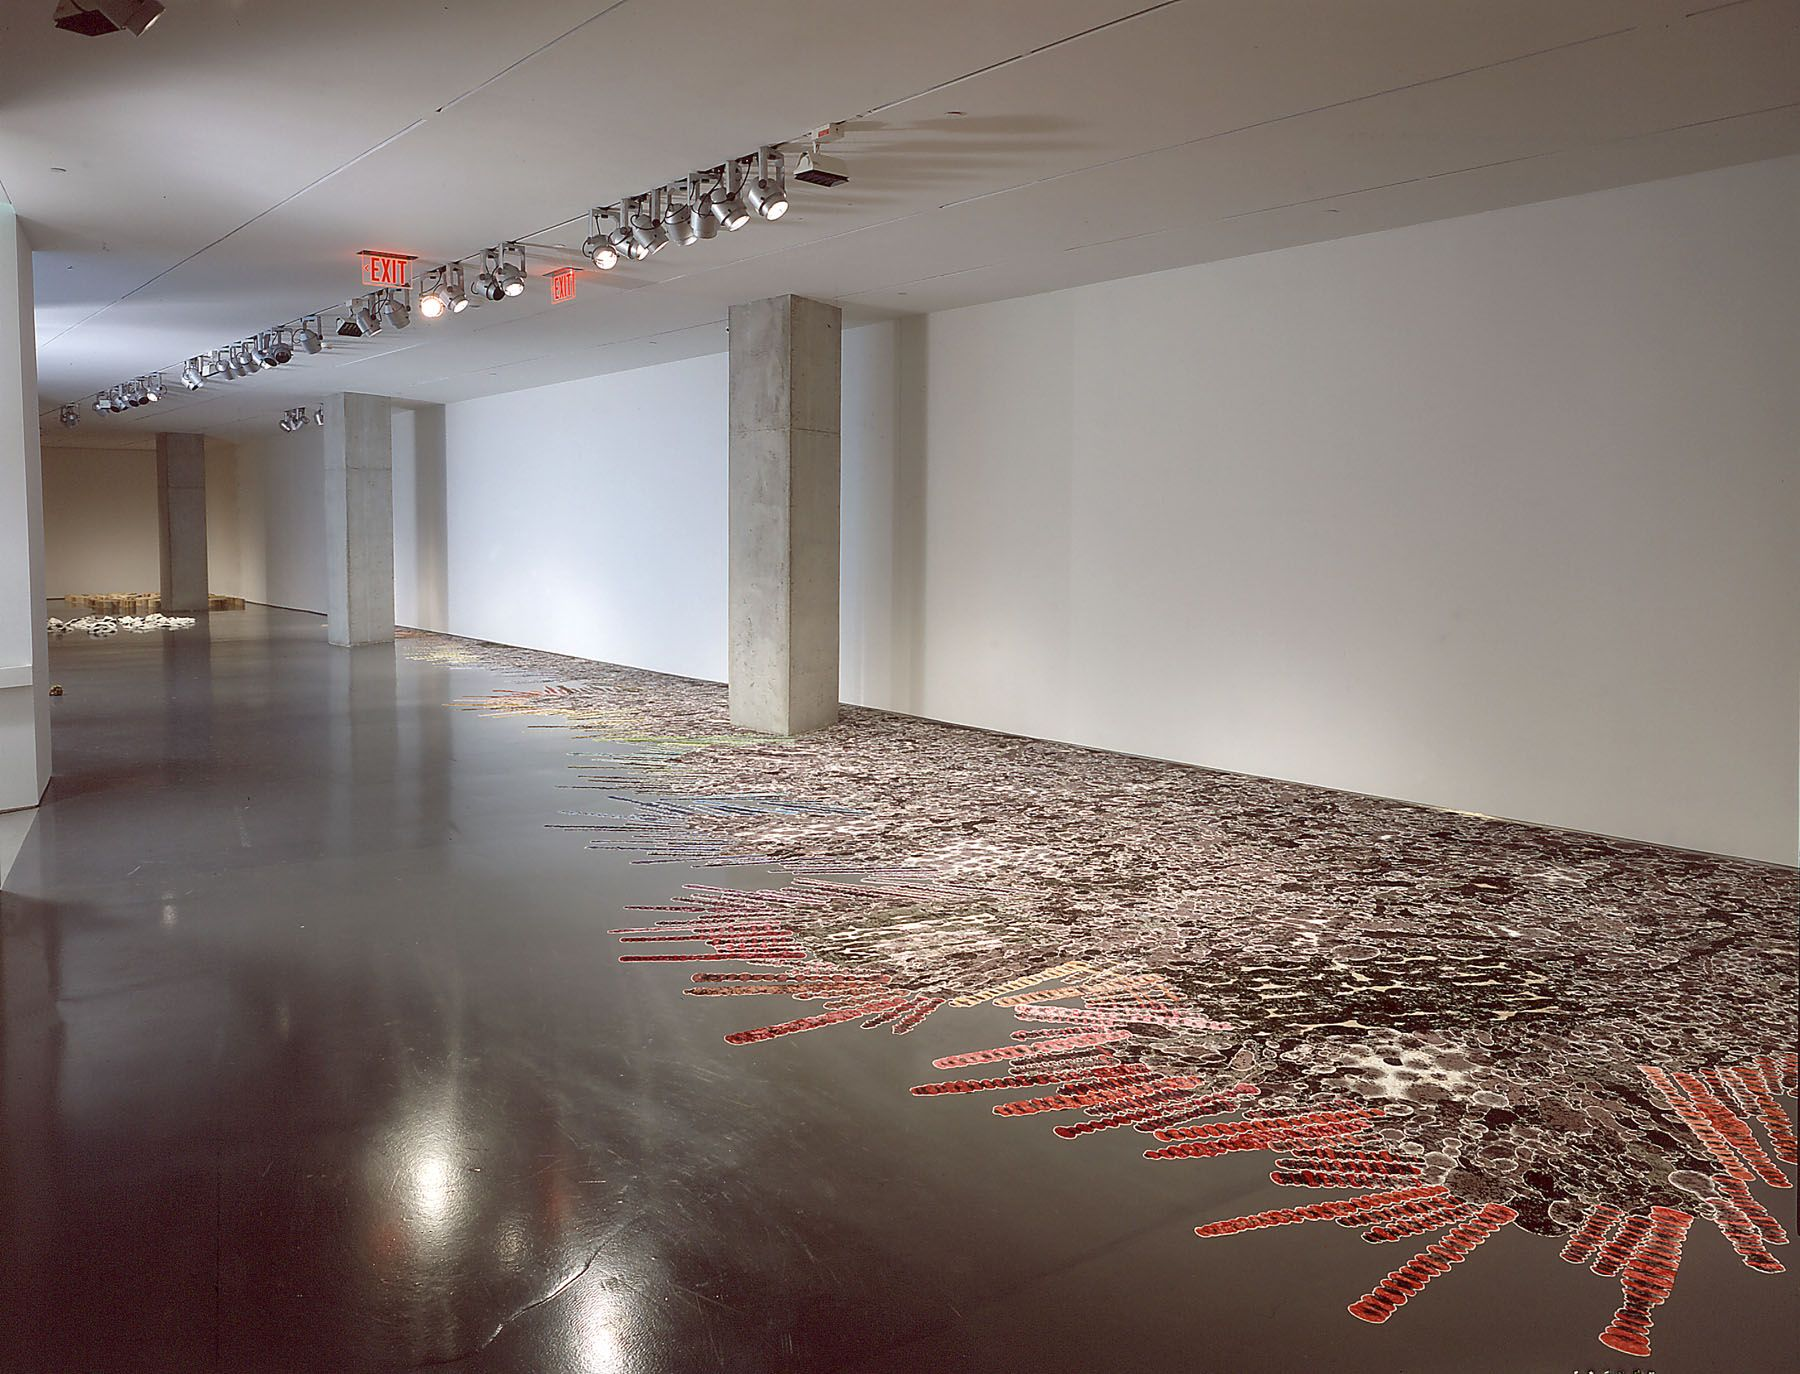 Polly Apfelbaum, installation view, Contemporary Arts Center (2004)